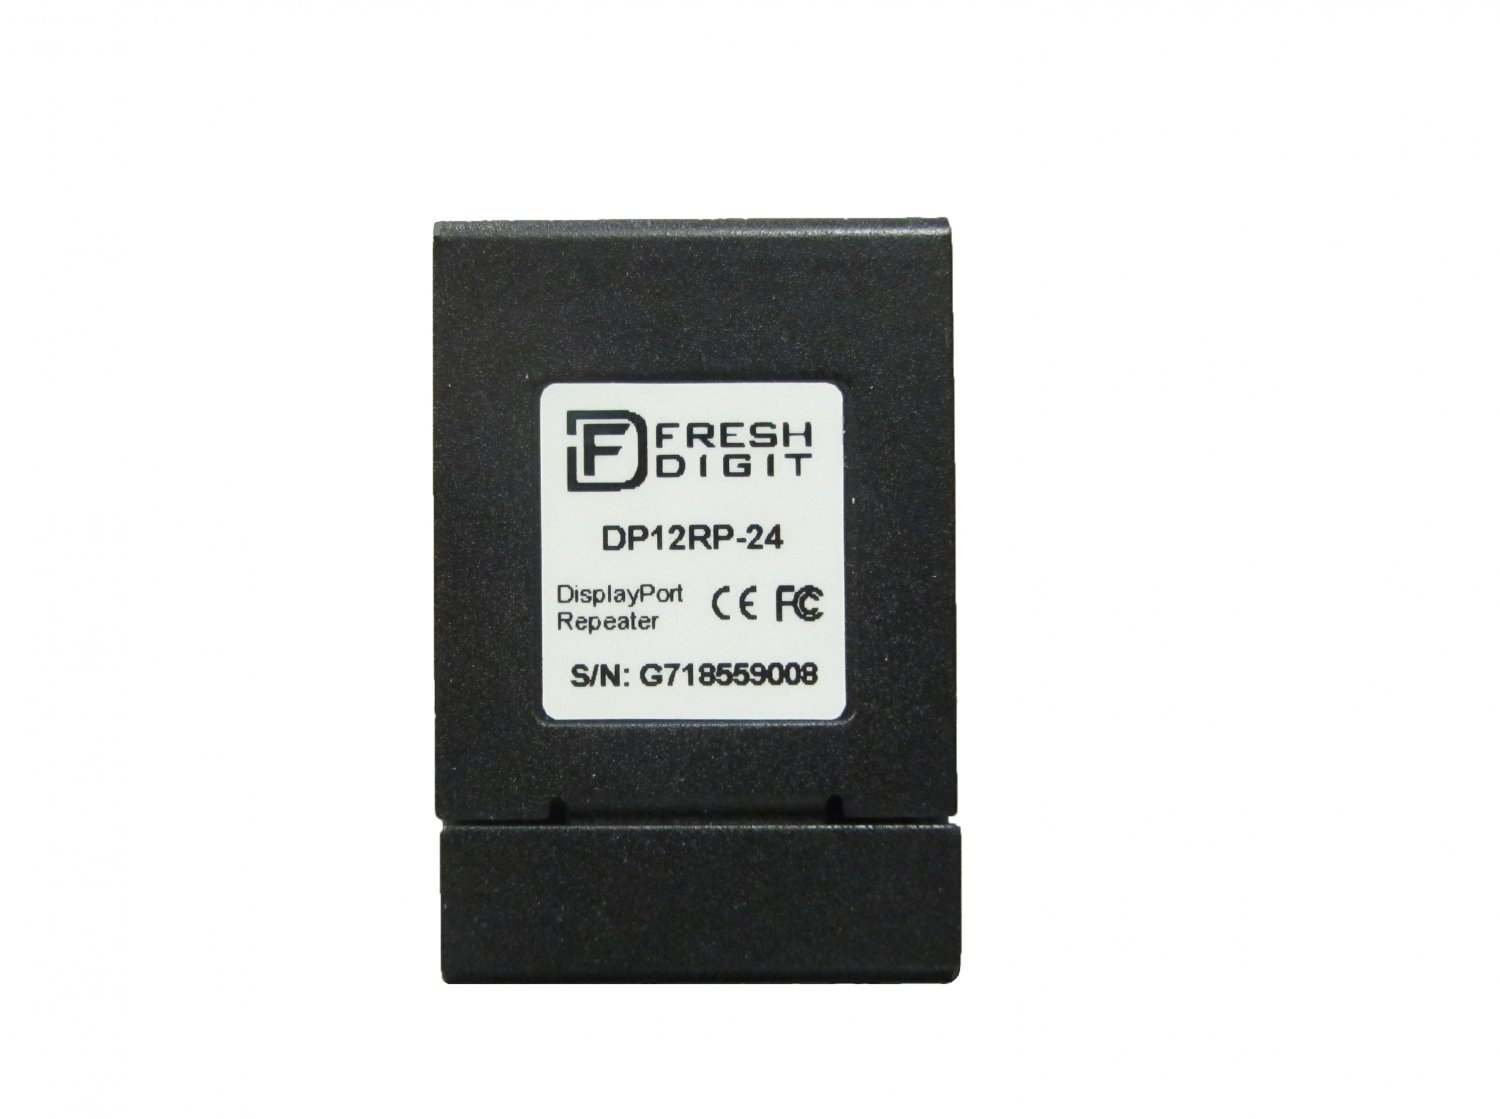 Fresh Digit 4K DisplayPort 1.2 Repeater for Audio/ Video Extension (for 24AWG cables)